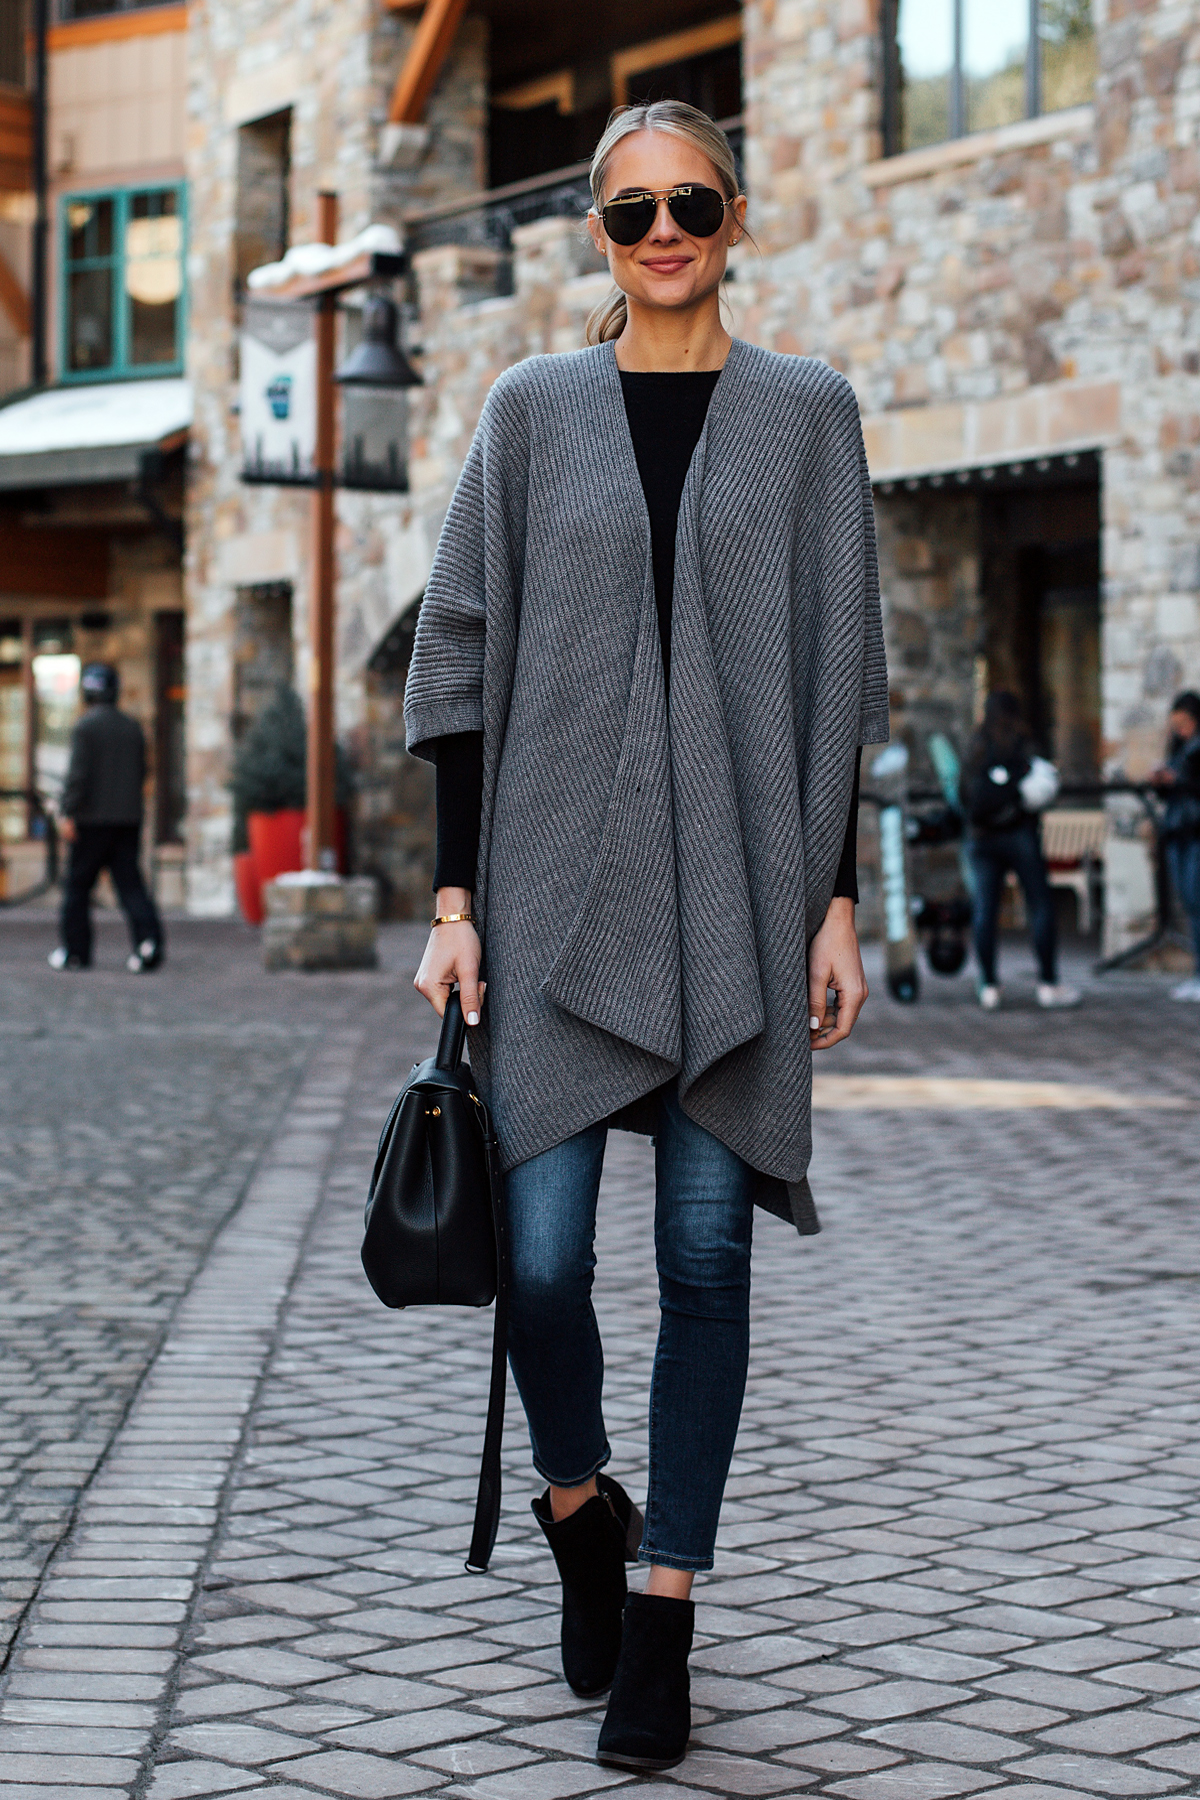 Blonde Woman Wearing All Saints Grey Sweater Poncho Denim Skinny Jeans Black Booties Polene Black Handbag Fashion Jackson San Diego Fashion Blogger Street Style